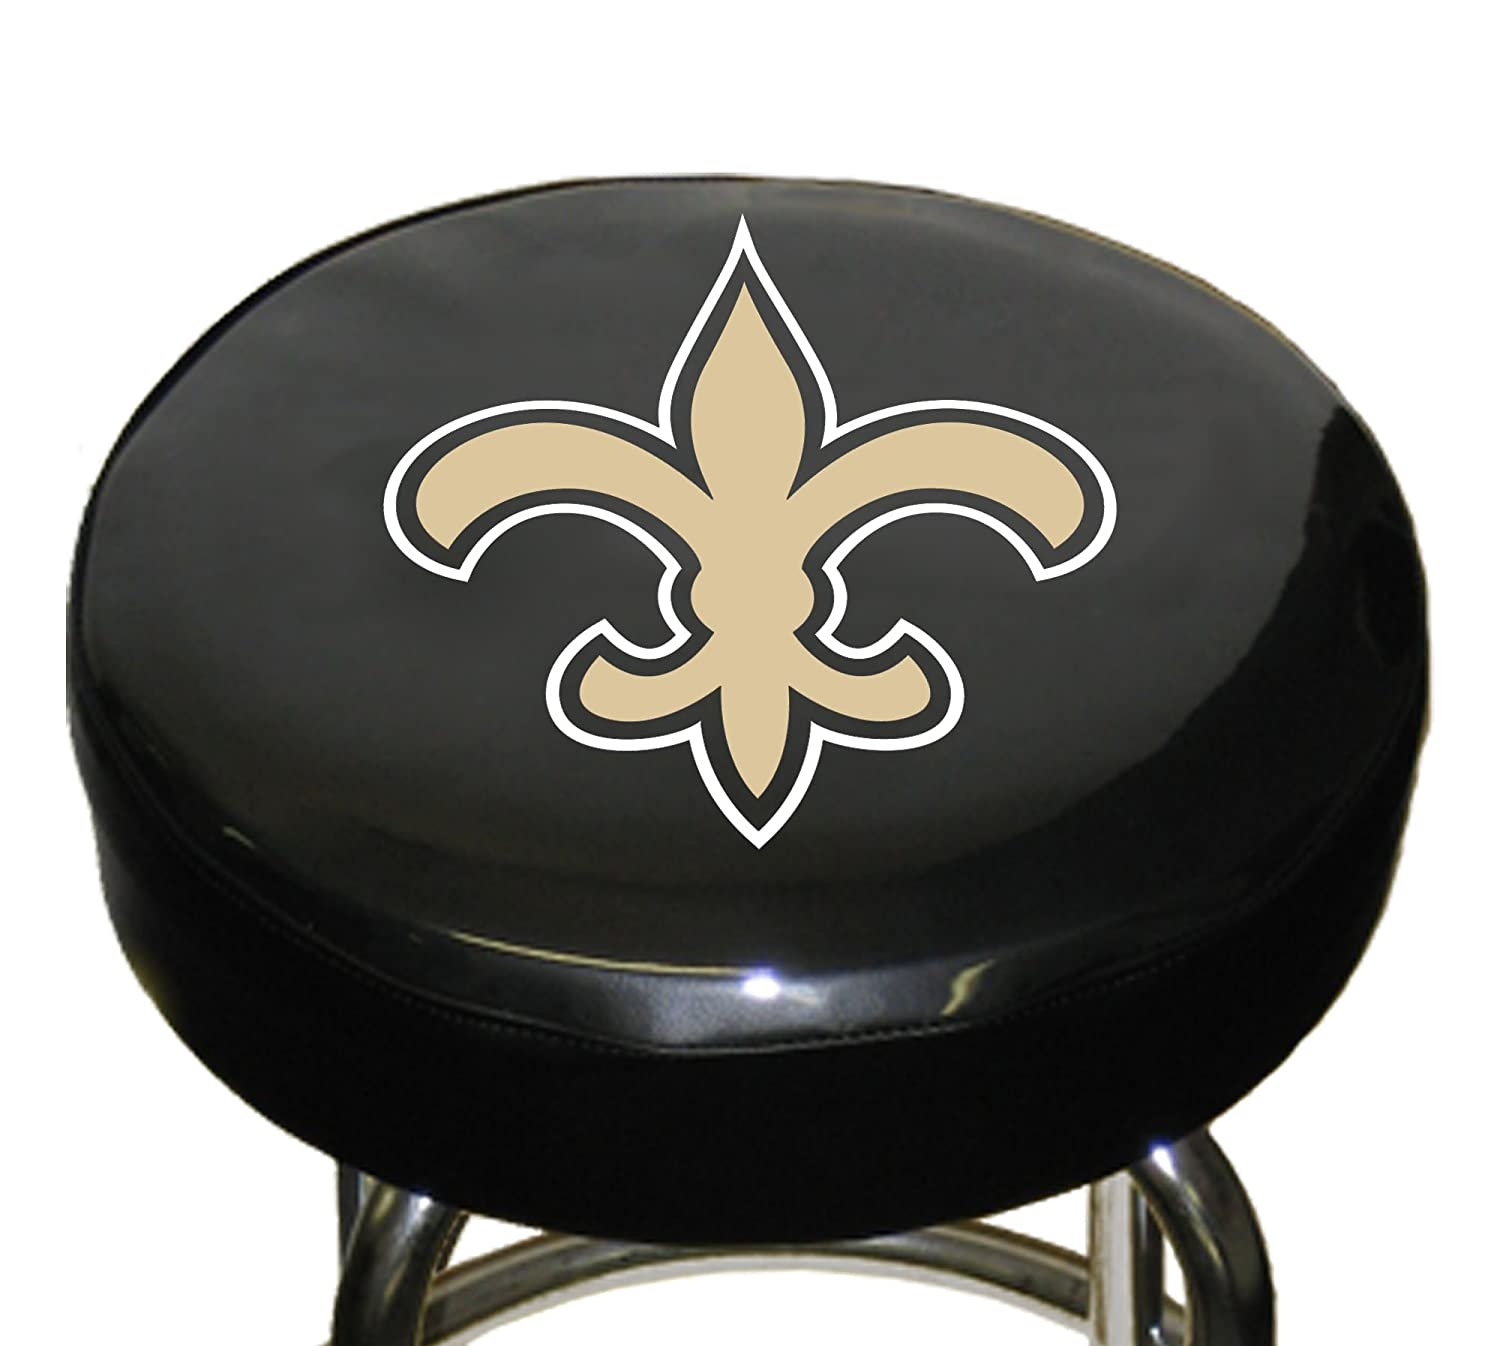 Nfl New Orleans Saints Bar Stool Cover Hardware Shop Stools